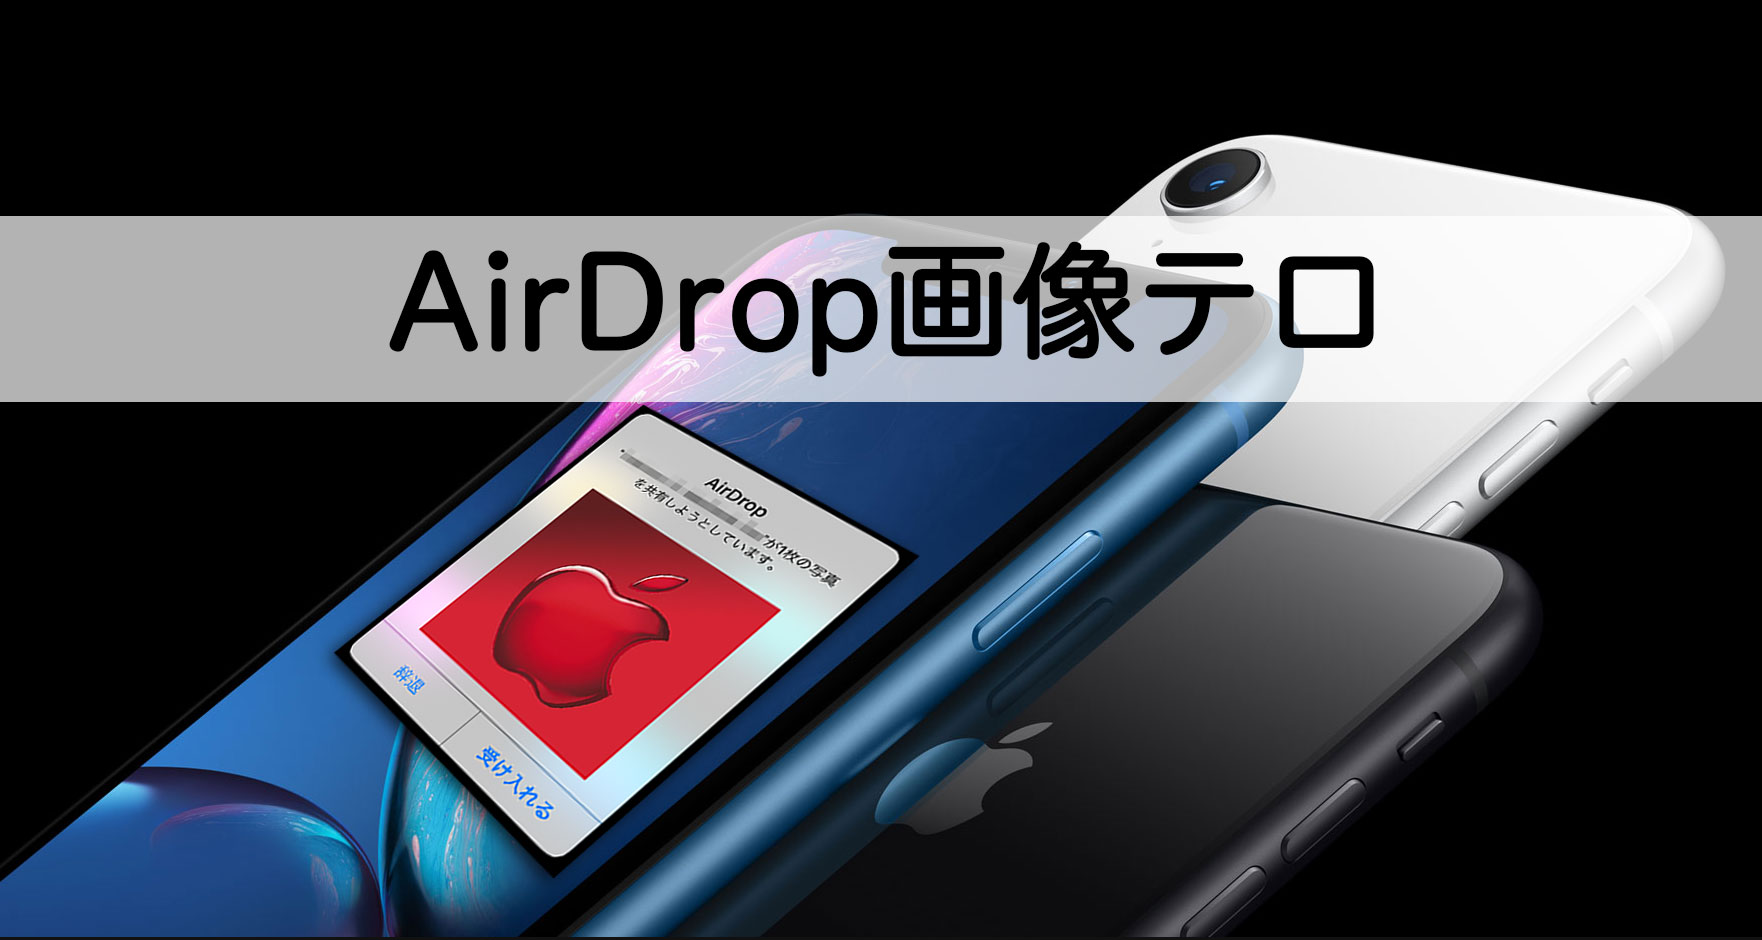 AirDrop画像テロ